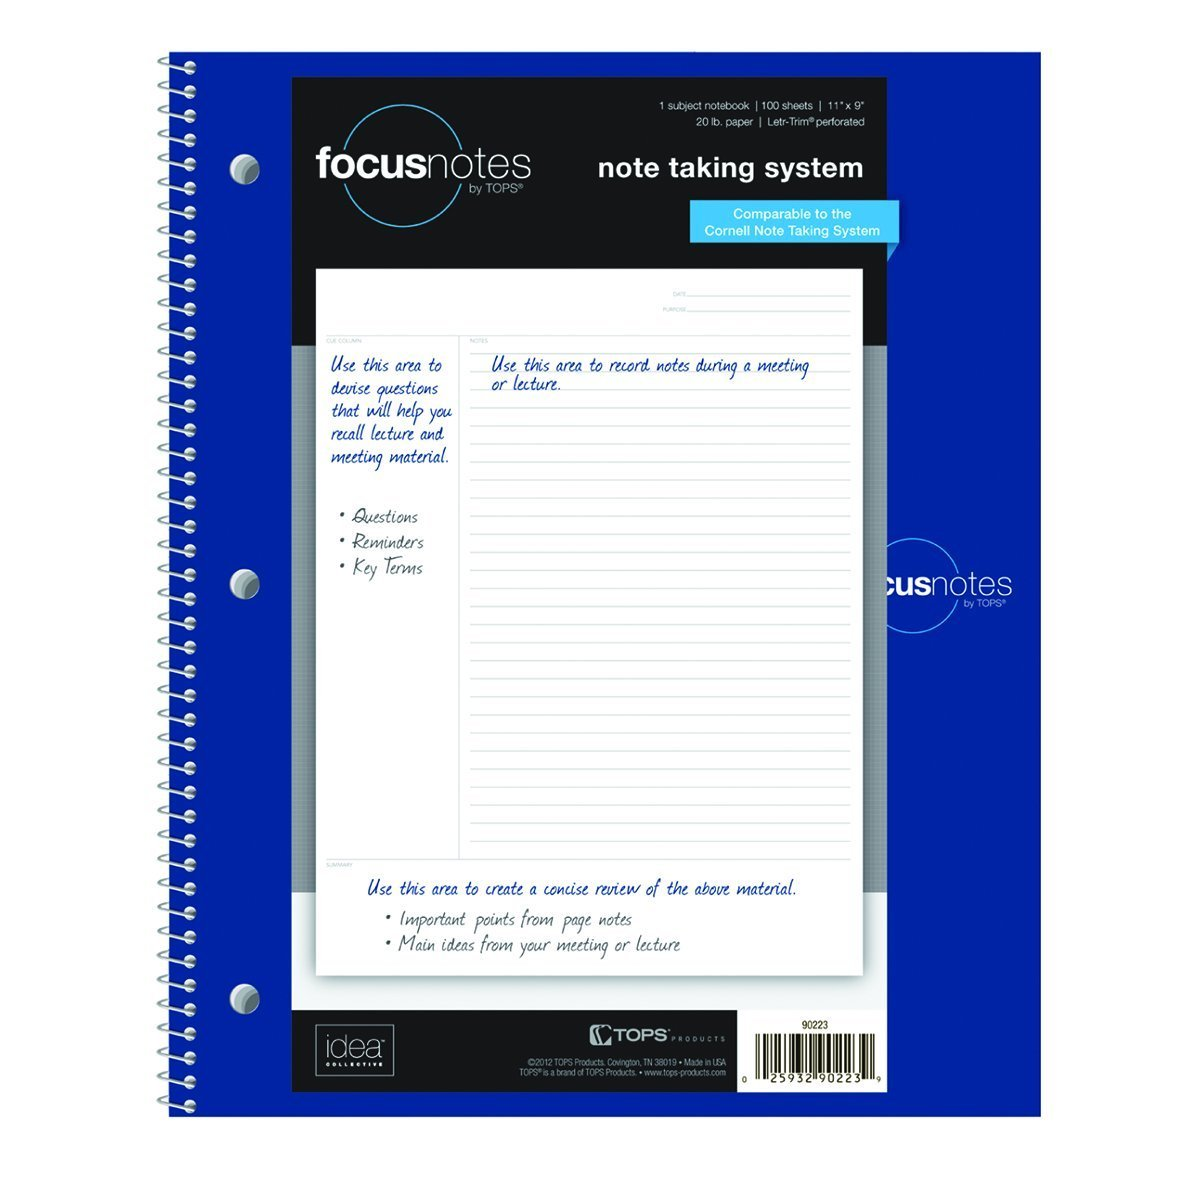 TOPS FocusNotes Note Taking System 1-Subject Notebook